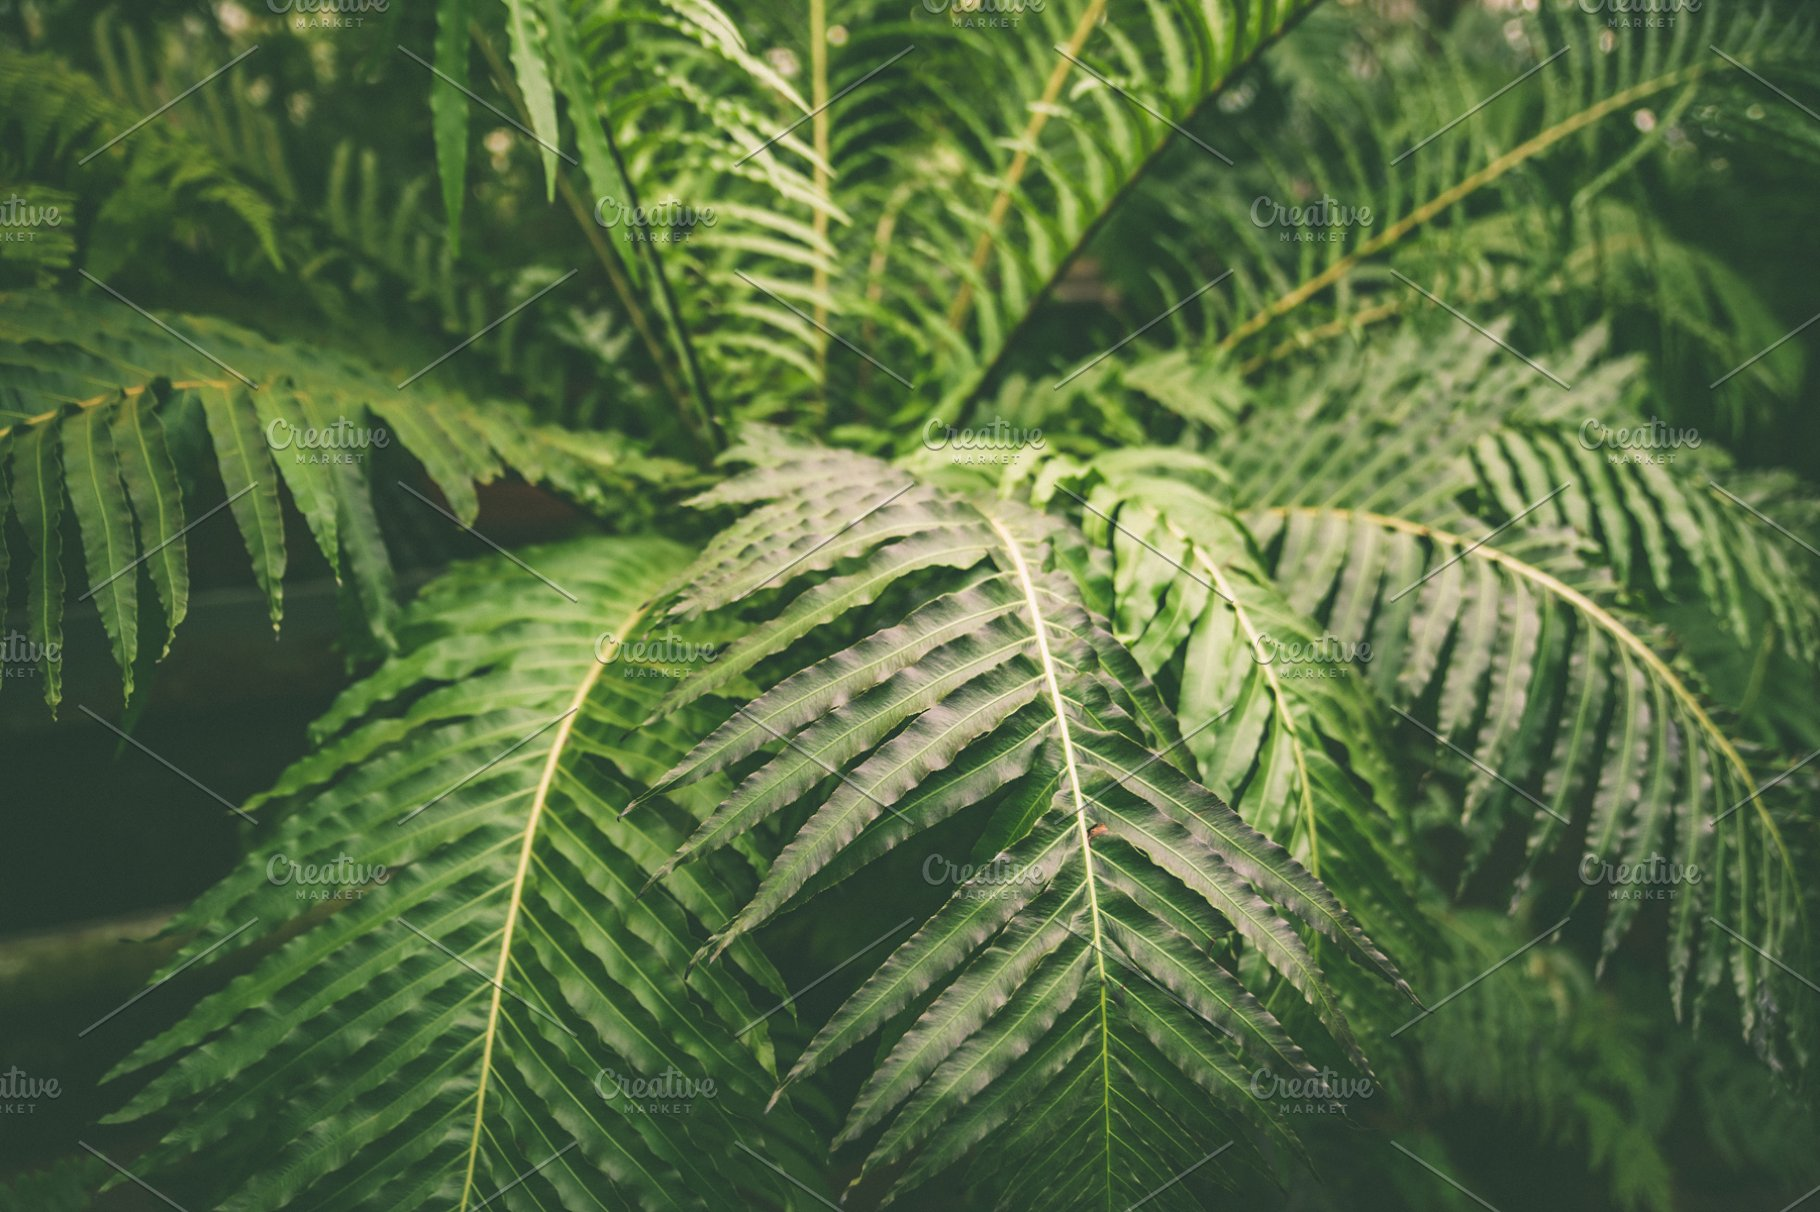 Green Leaves Of Tropical Fern Plants High Quality Nature Stock